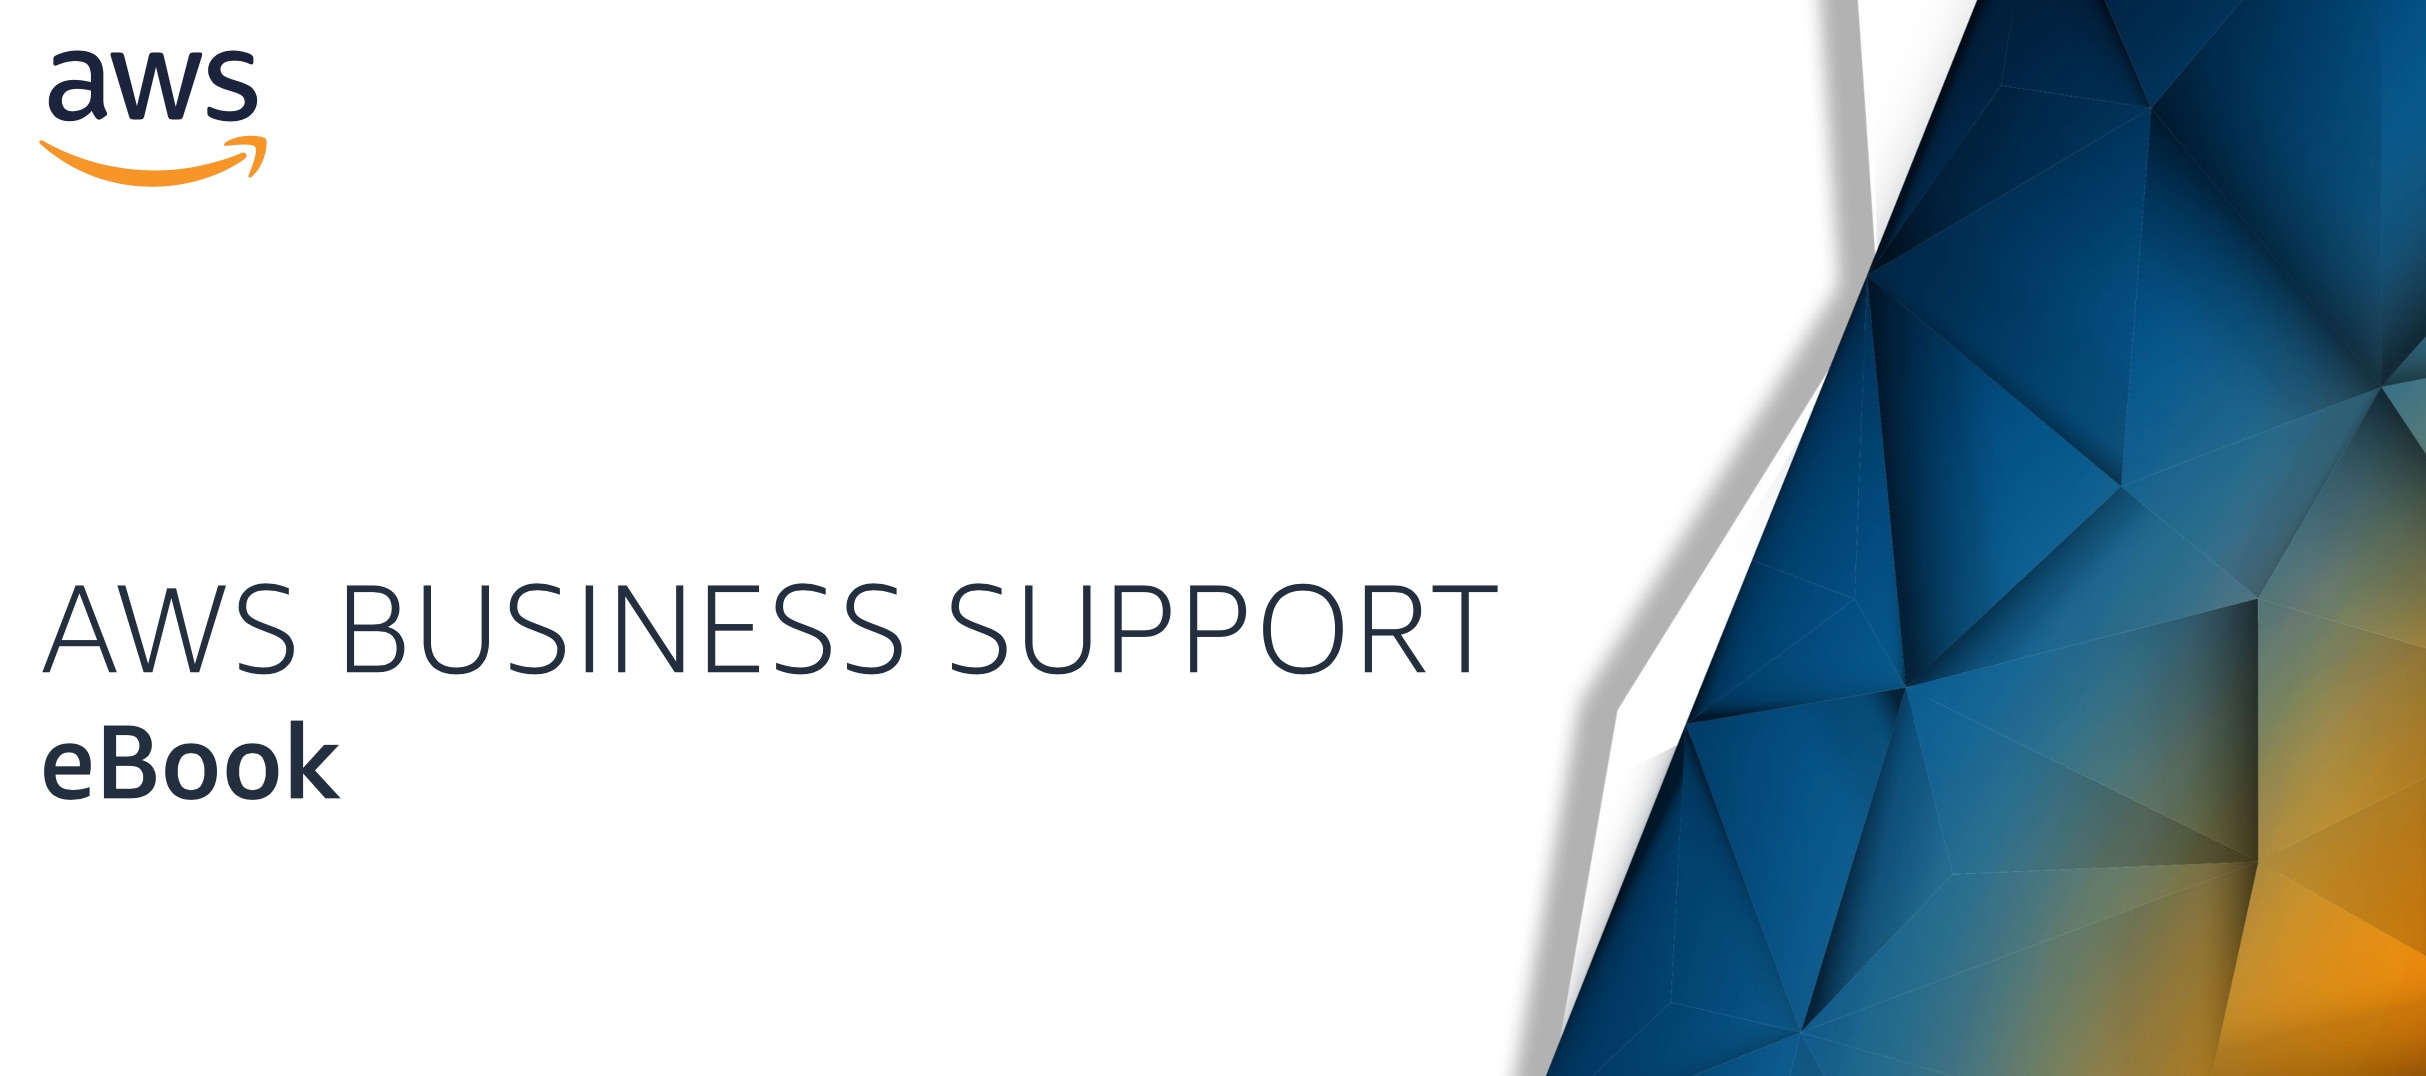 business-support-ebook-thumb